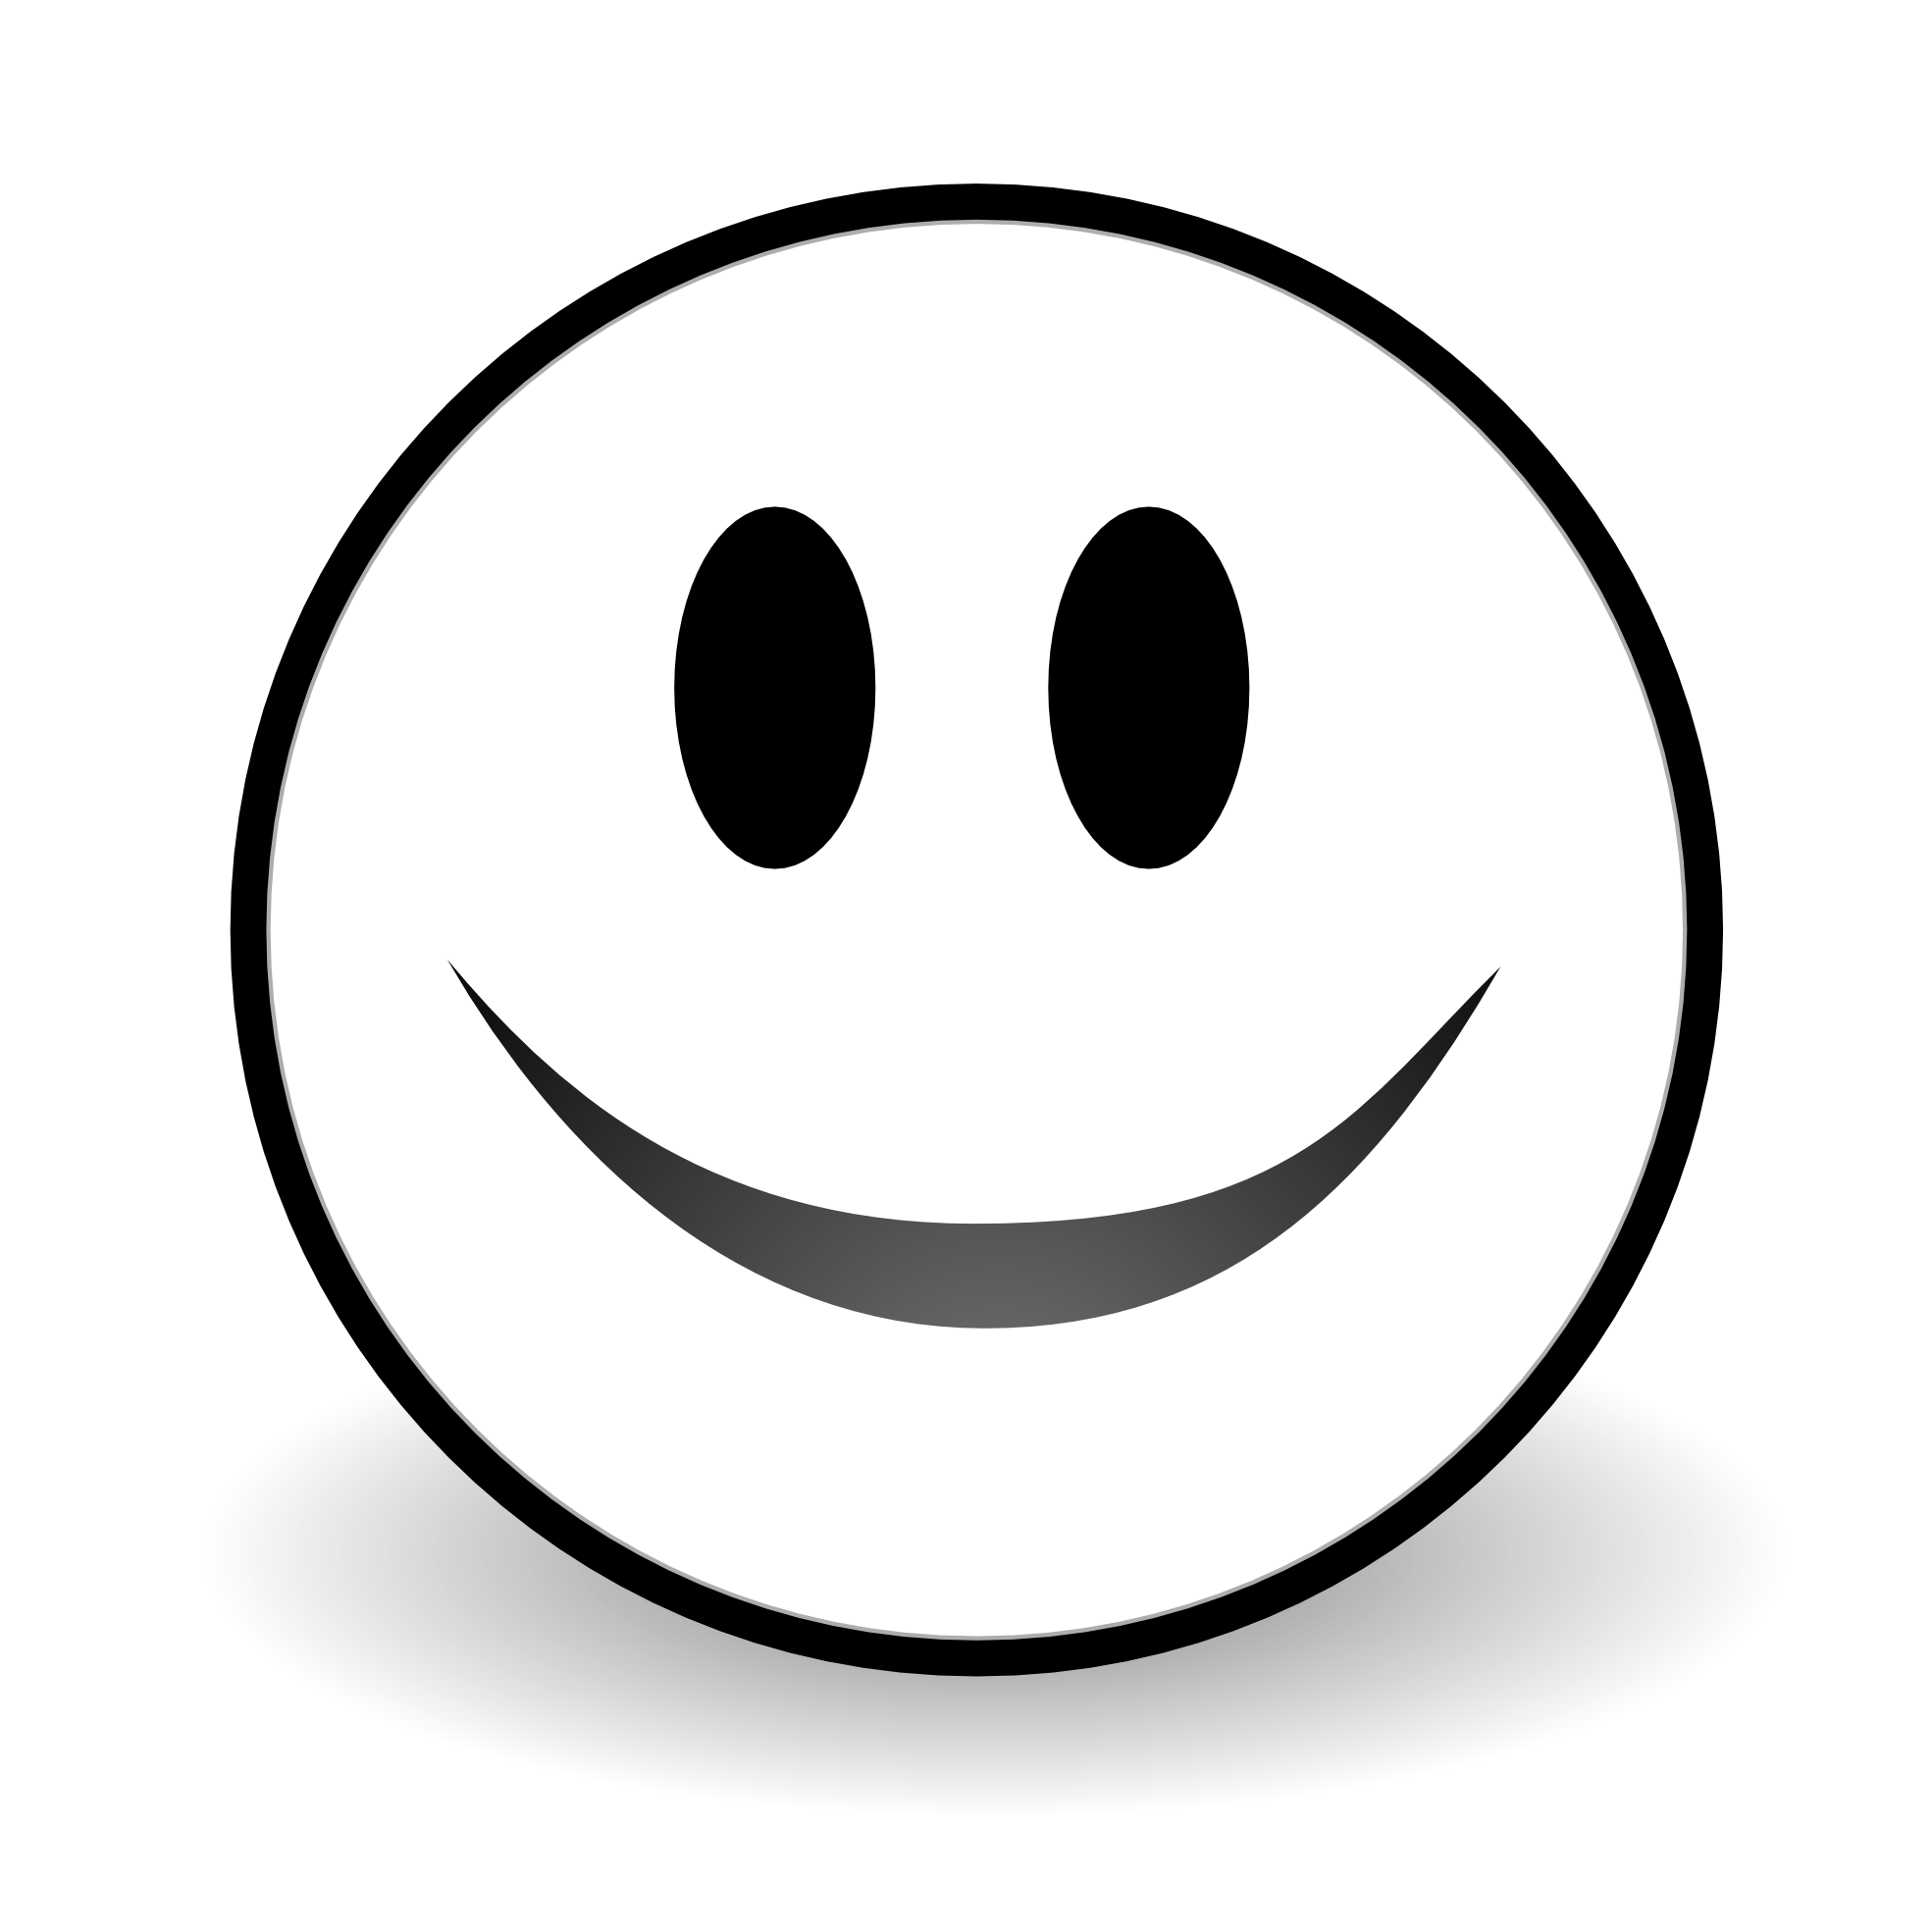 1969x1969 Smile Clipart Black And White Free Images